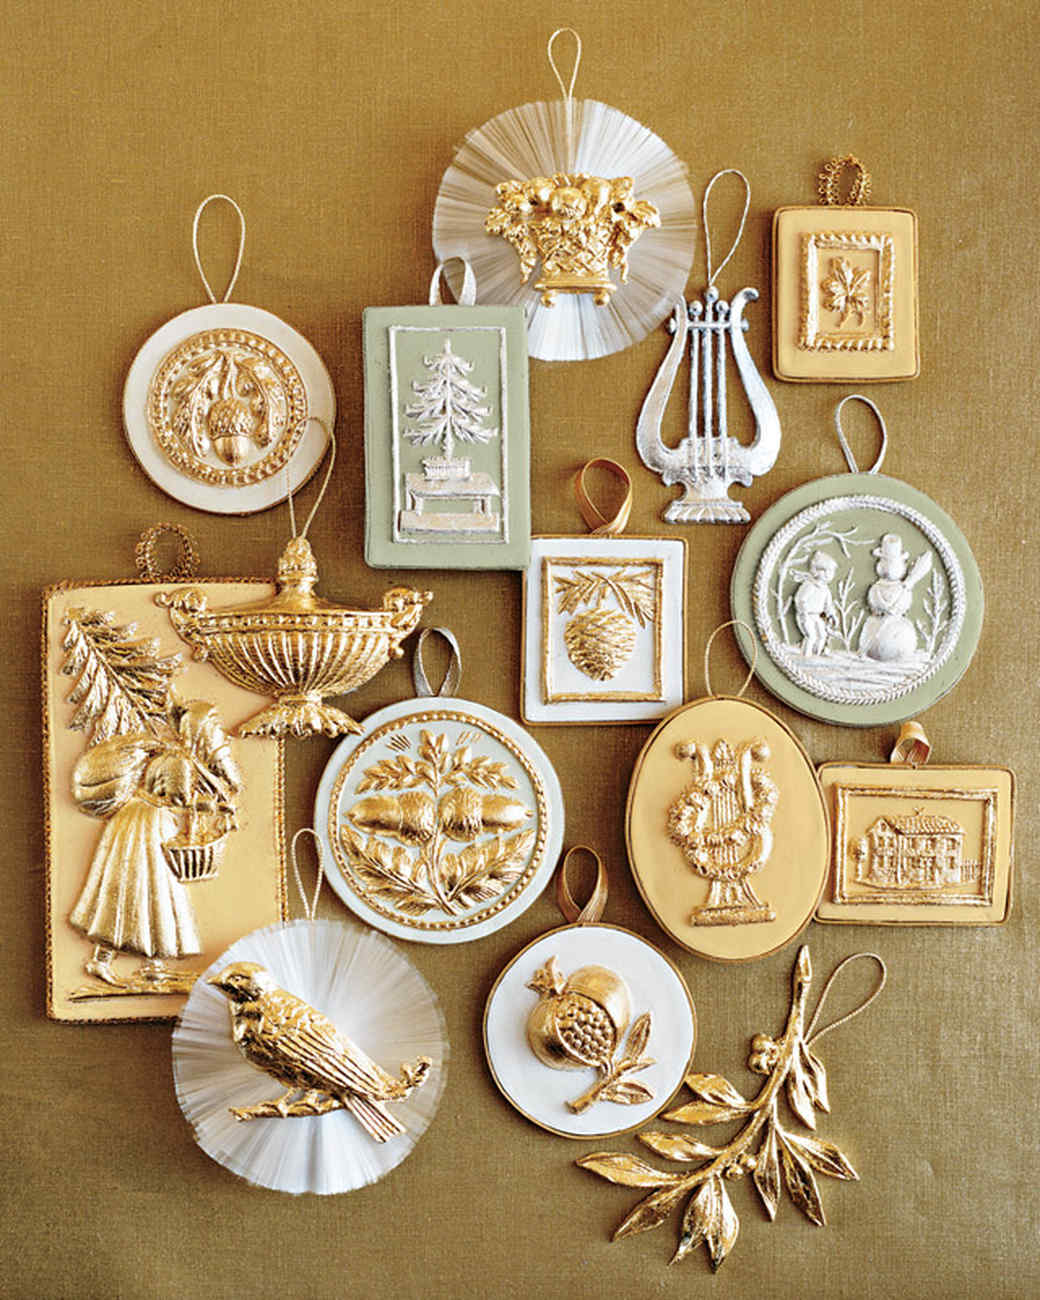 20 Of Our Most Memorable Diy Christmas Ornament Projects